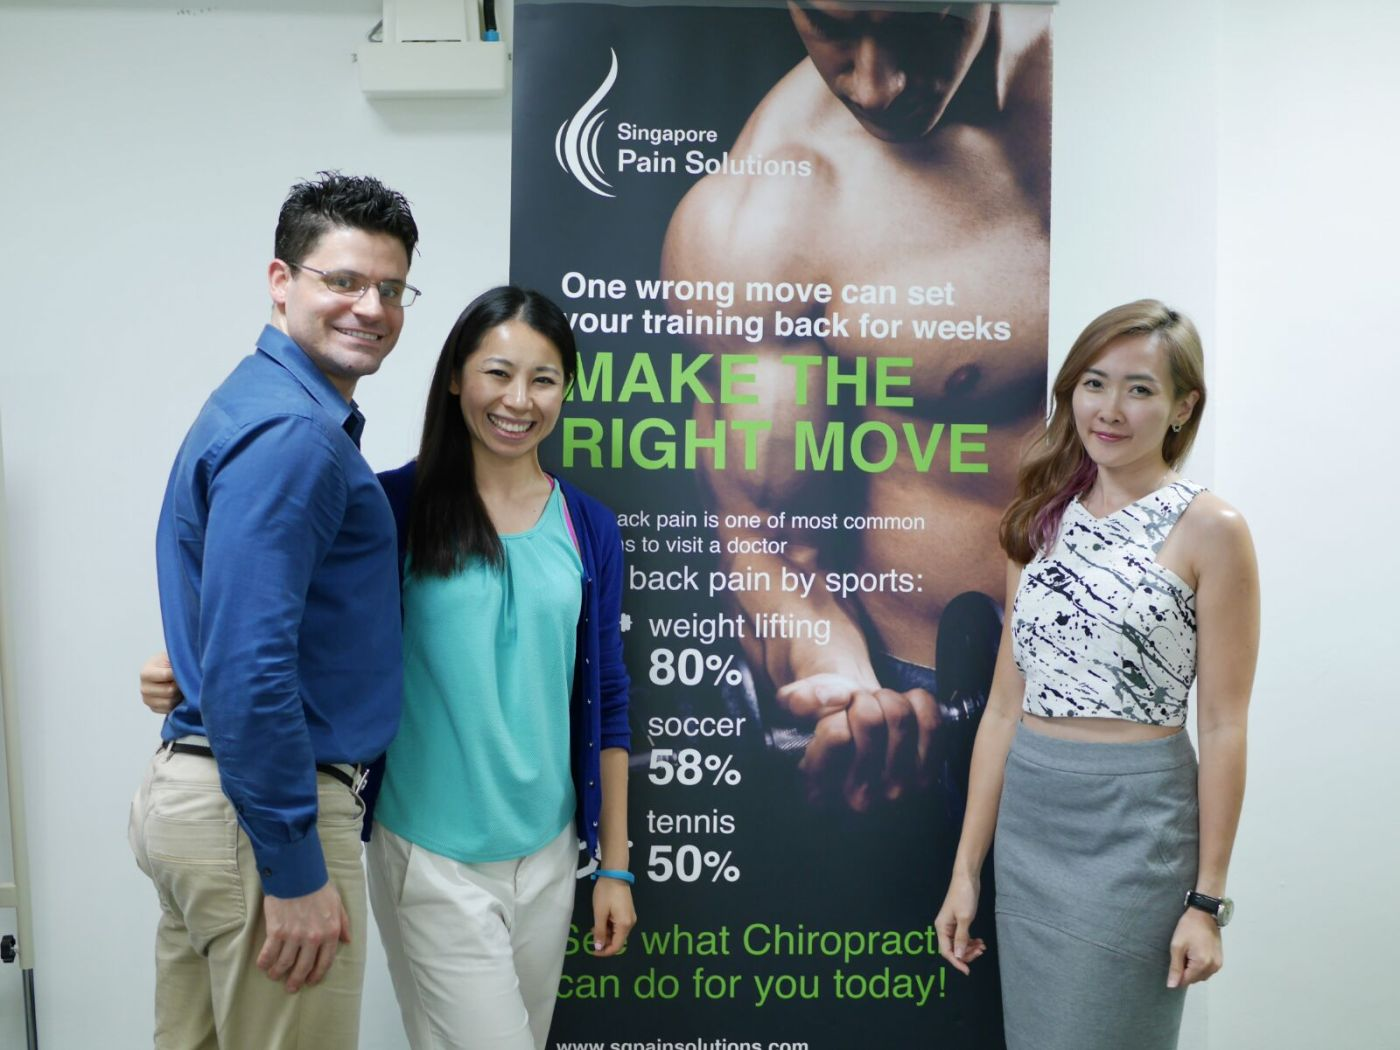 Singapore Pain Solutions Founders Dr Jeff Ederer and Dr Jenny Li